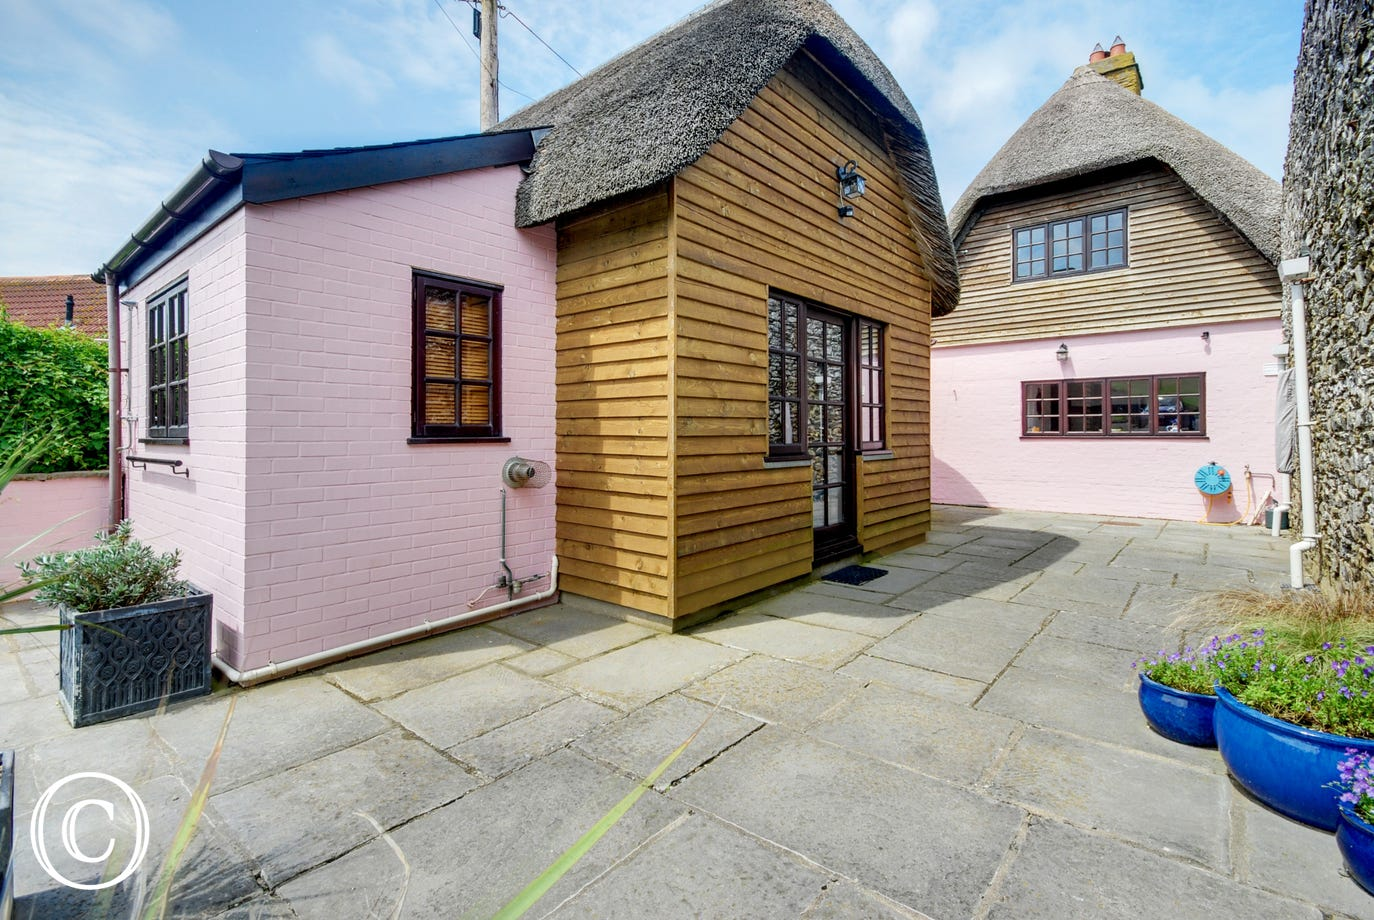 Completely separate self contained annexe only a few feet away from the main cottage entrance